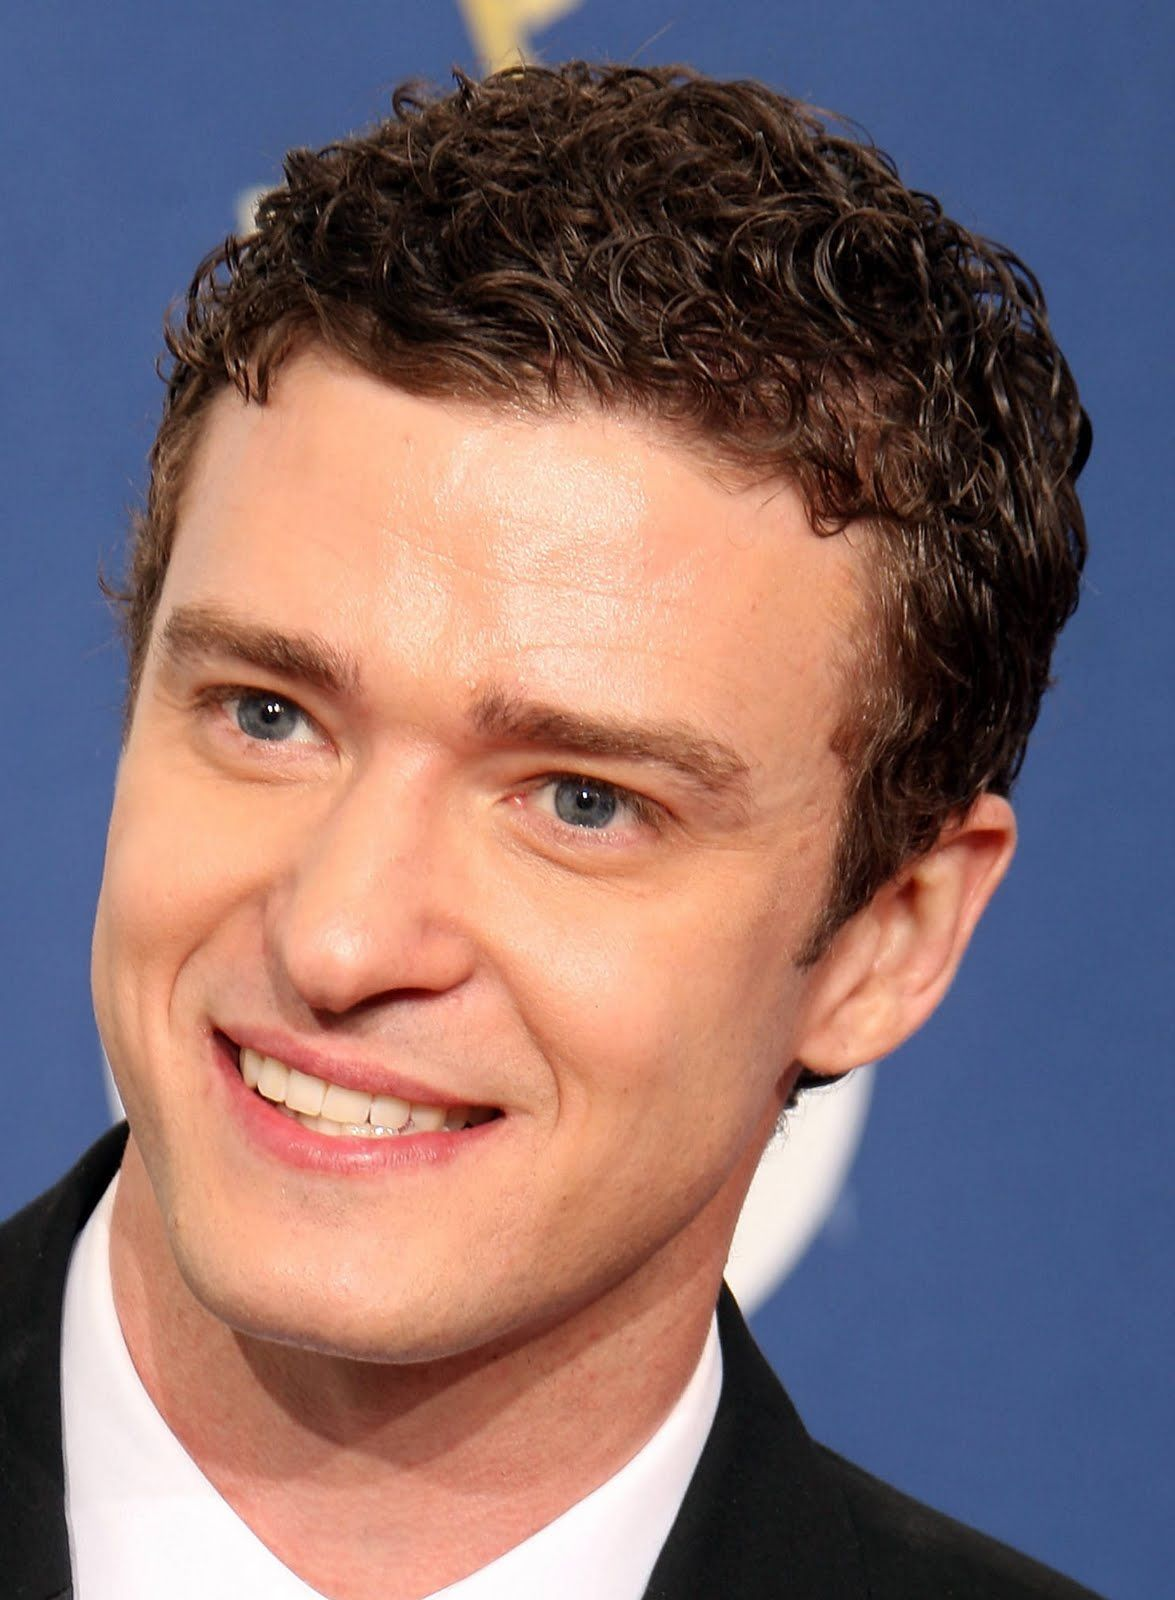 Curly Hairstyles For Men Justin Timberlake